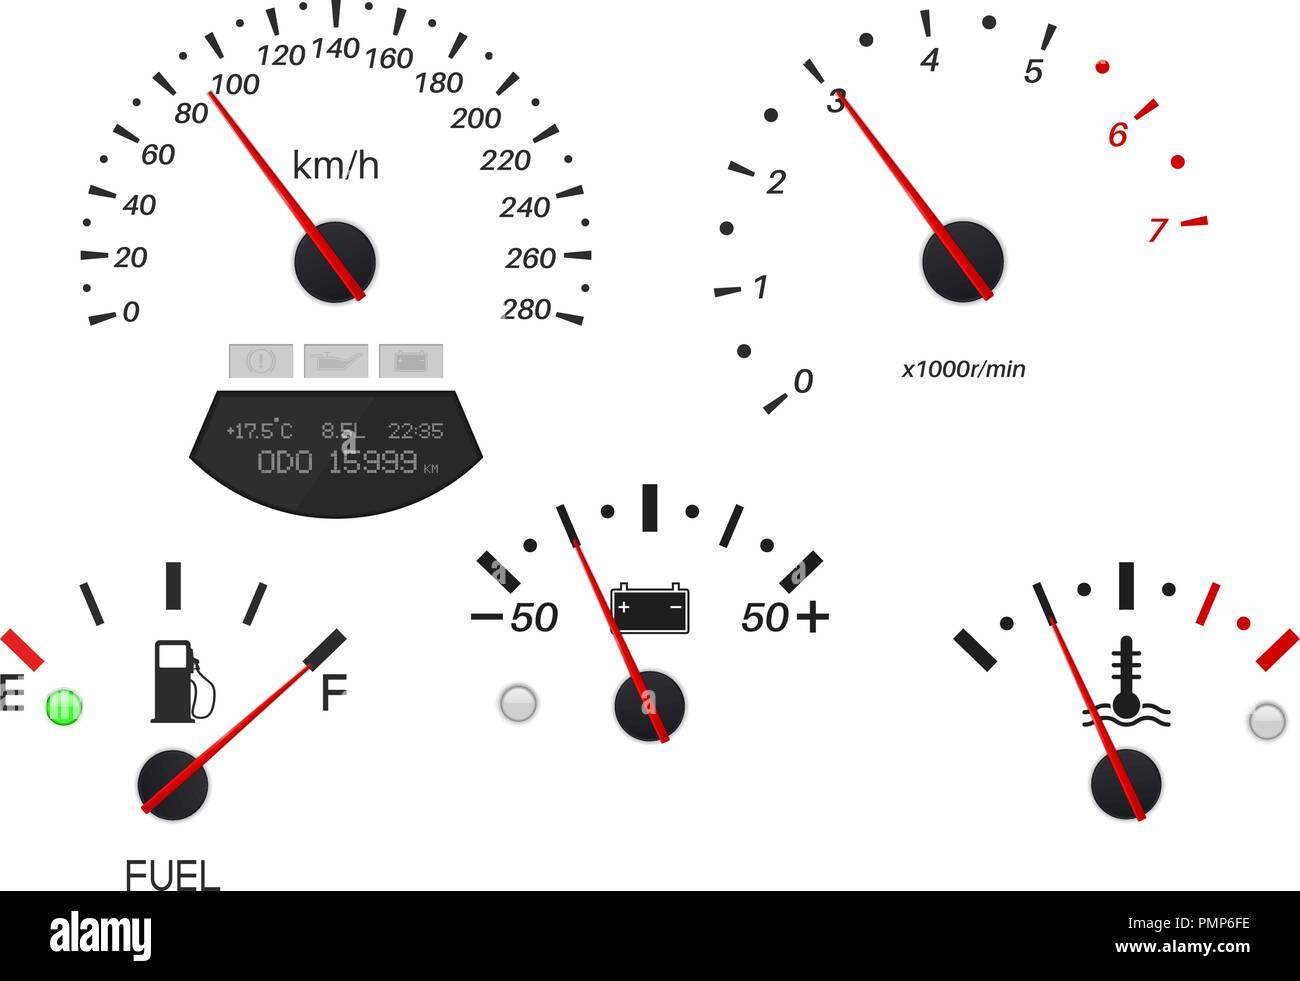 Car dashboard scales. Fuel gauge, speedometer, tachometer, temperature indicator - Stock Image